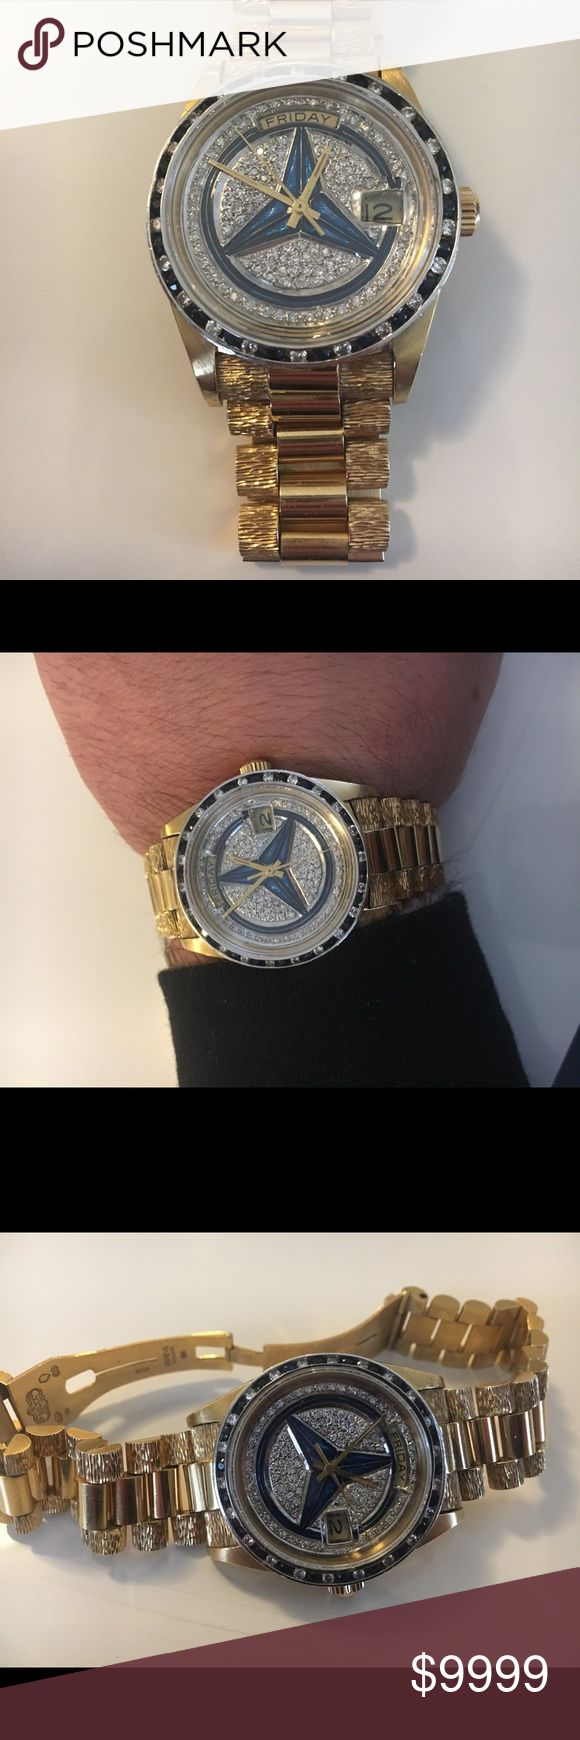 Rolex president custom made 18k gold Custom made Rolex president with diamonds and sapphire Mercedes Benz logo truly one of a kind. 100% real Rolex not a fake have service records for cleaning and repair at Rolex retailer. Serious buyer only ! No trades and please no ridiculous offers ty rolex Accessories Watches